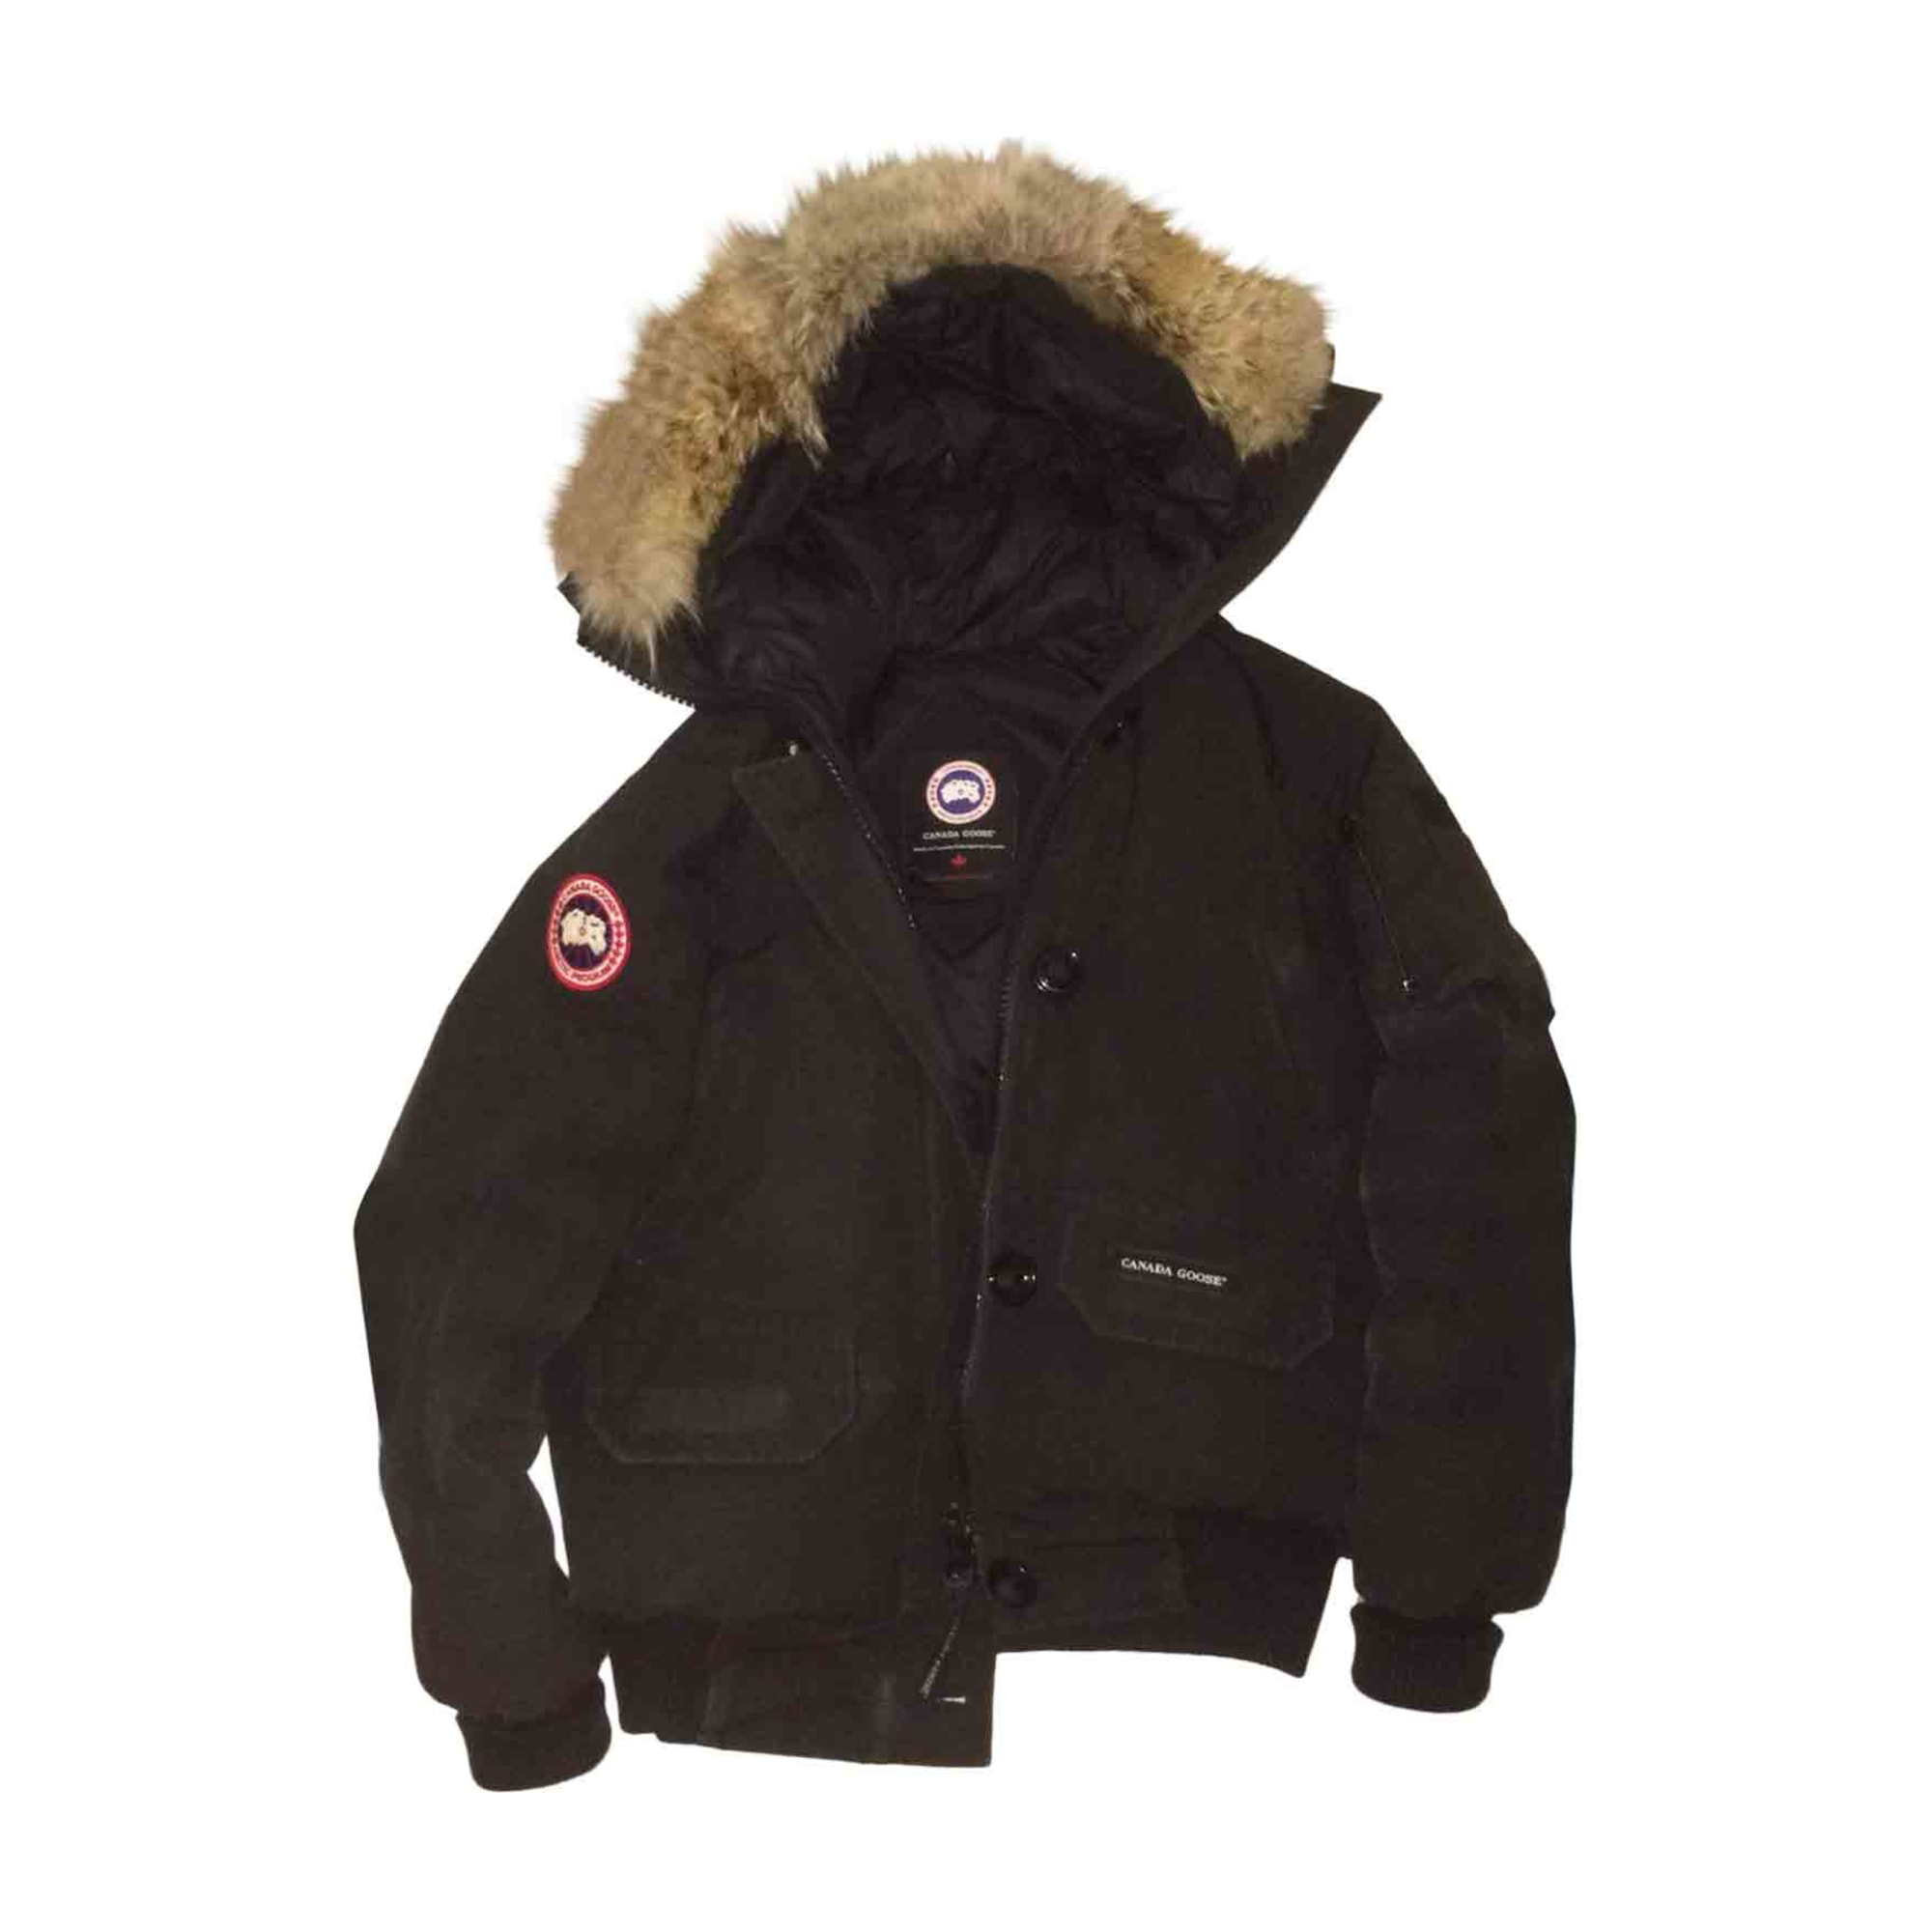 S Canada Goose Taille Blouson Homme 5uJTlFK1c3